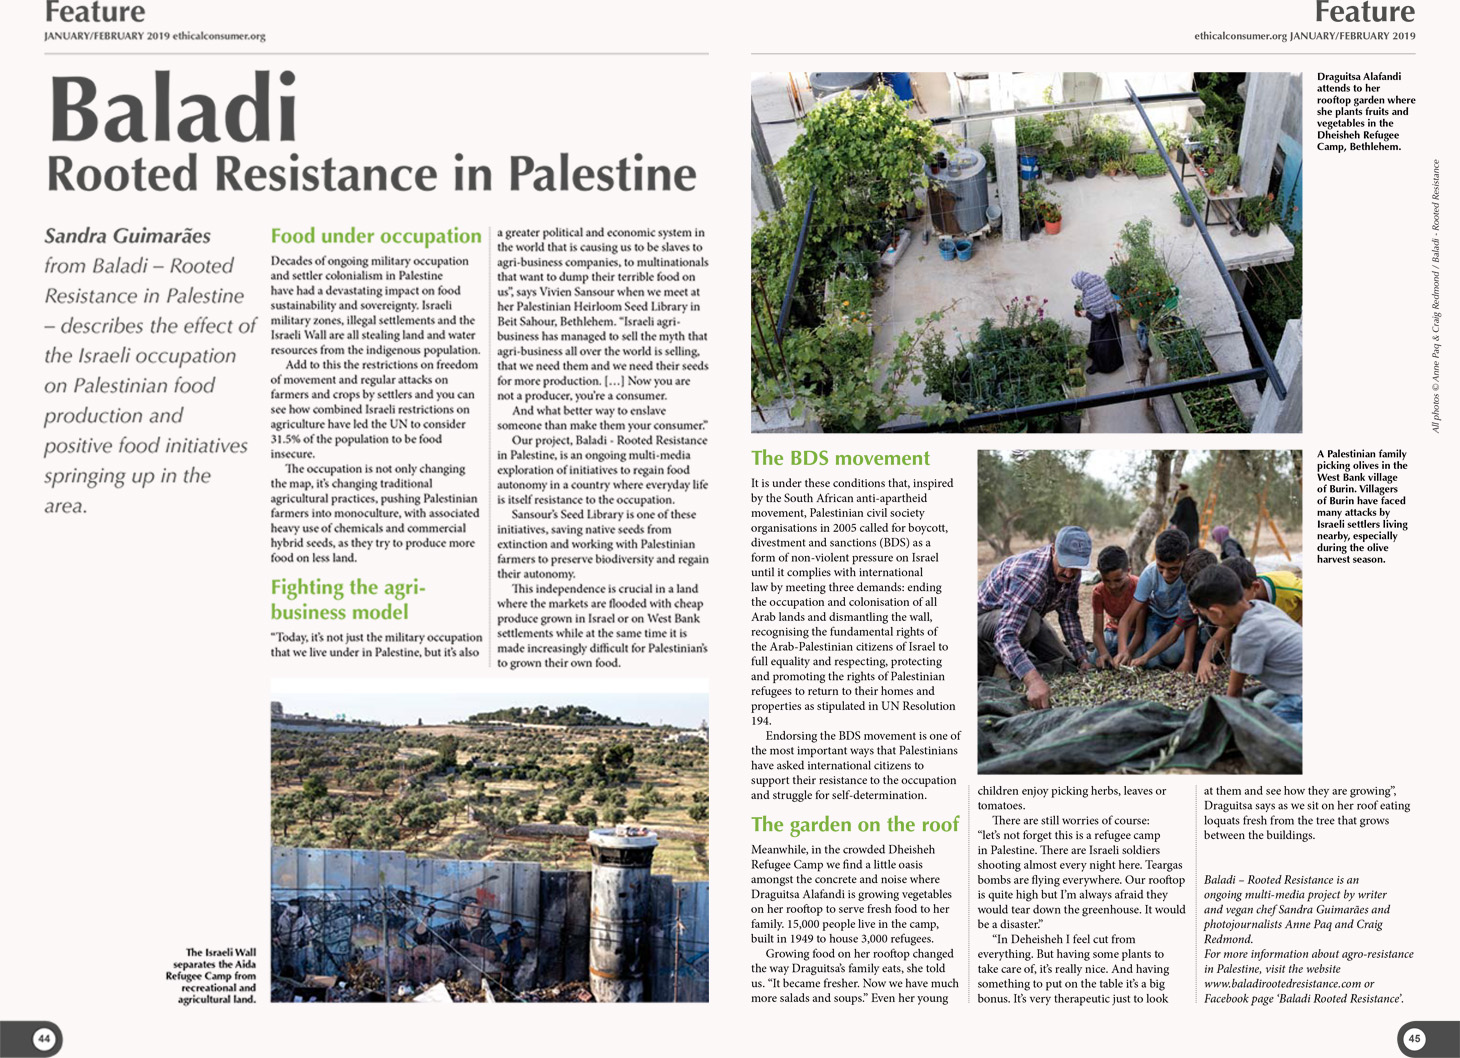 Baladi - Rooted Resistance article published in Ethical Consumer Magazine, January  / February 2019